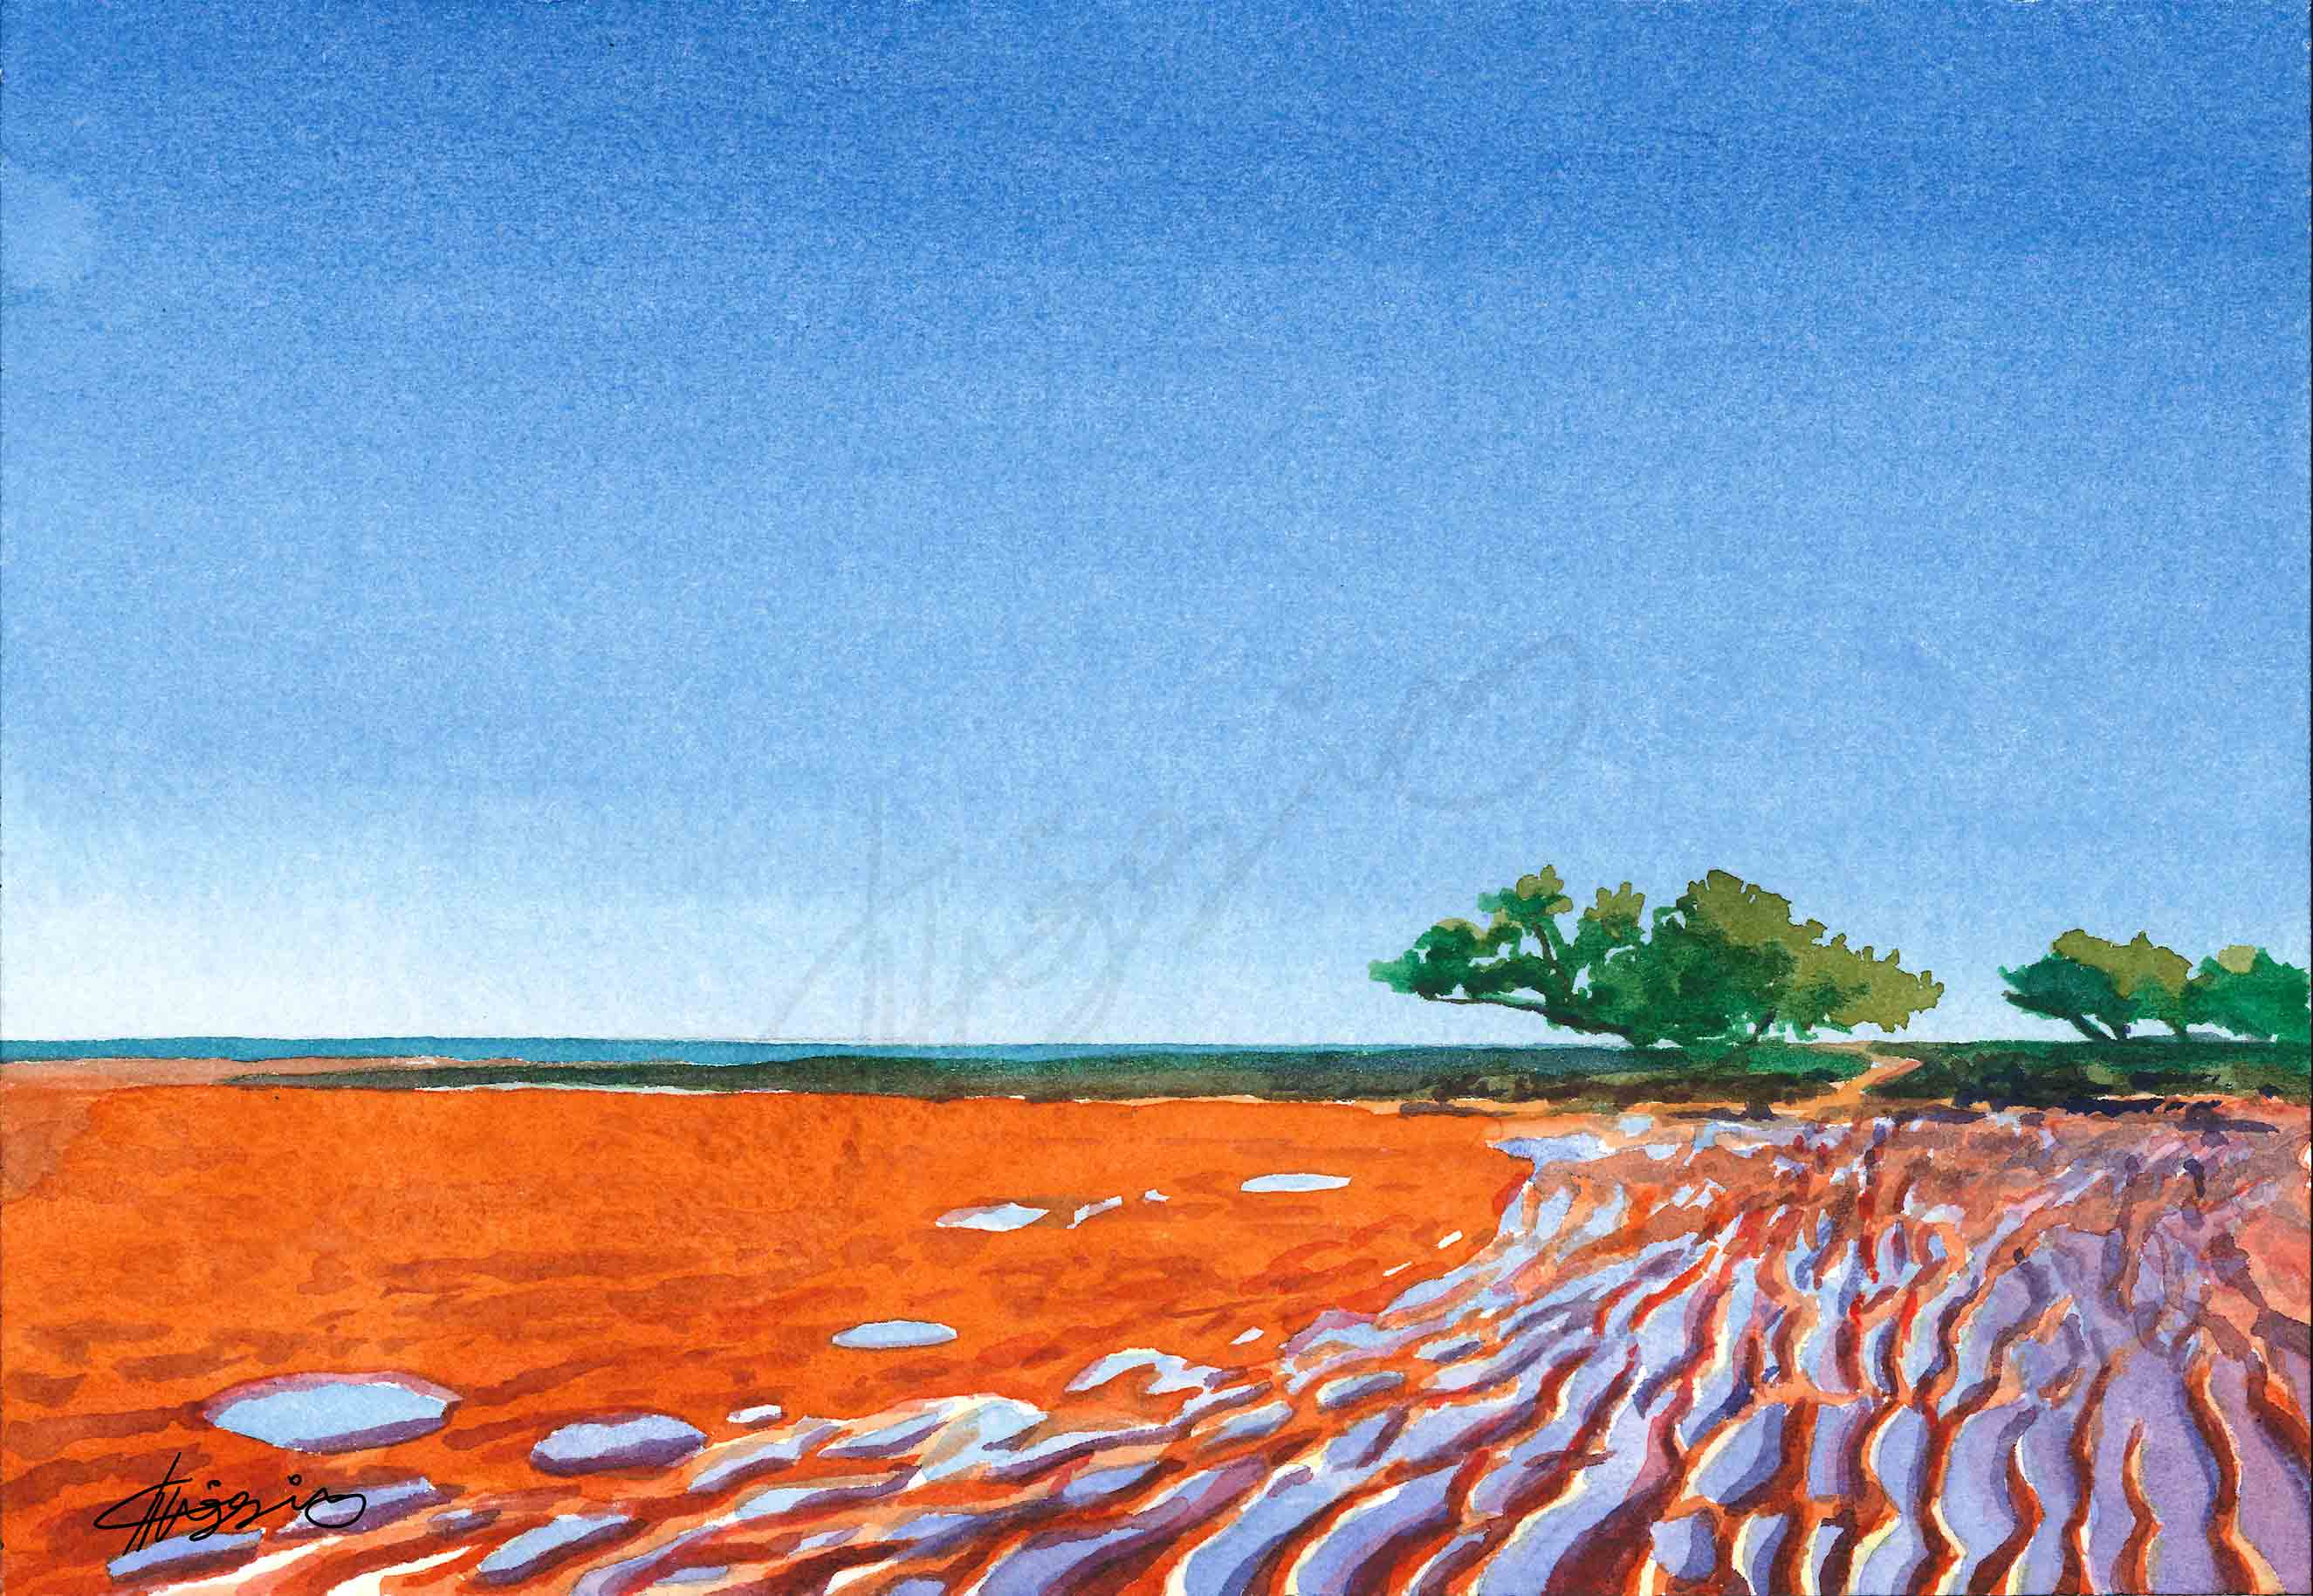 A watercolour painting of Broome's red mud, exposed by low tide, with a lone tree in the distance